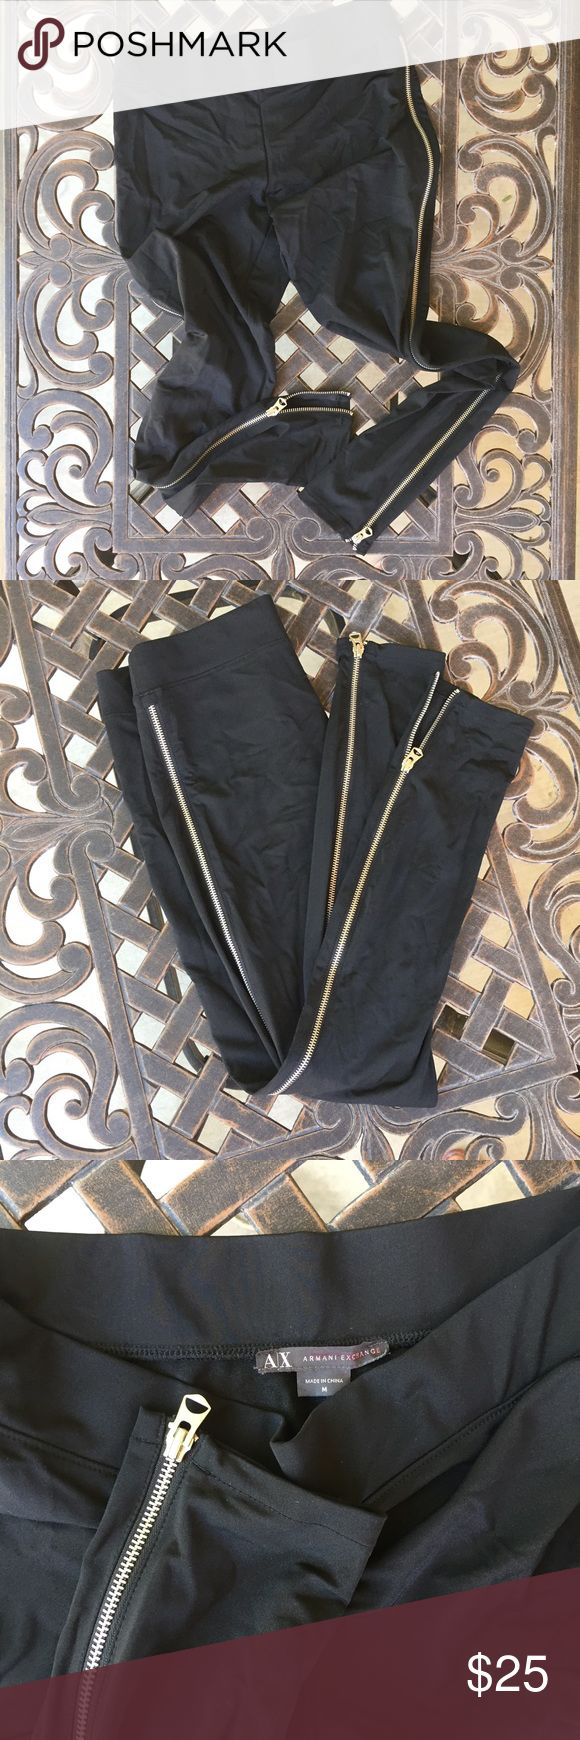 Armani Exchange Leggings In a great condition, worn just couple times. ✅ Bundles are 15% off! ✅ A/X Armani Exchange Pants Leggings